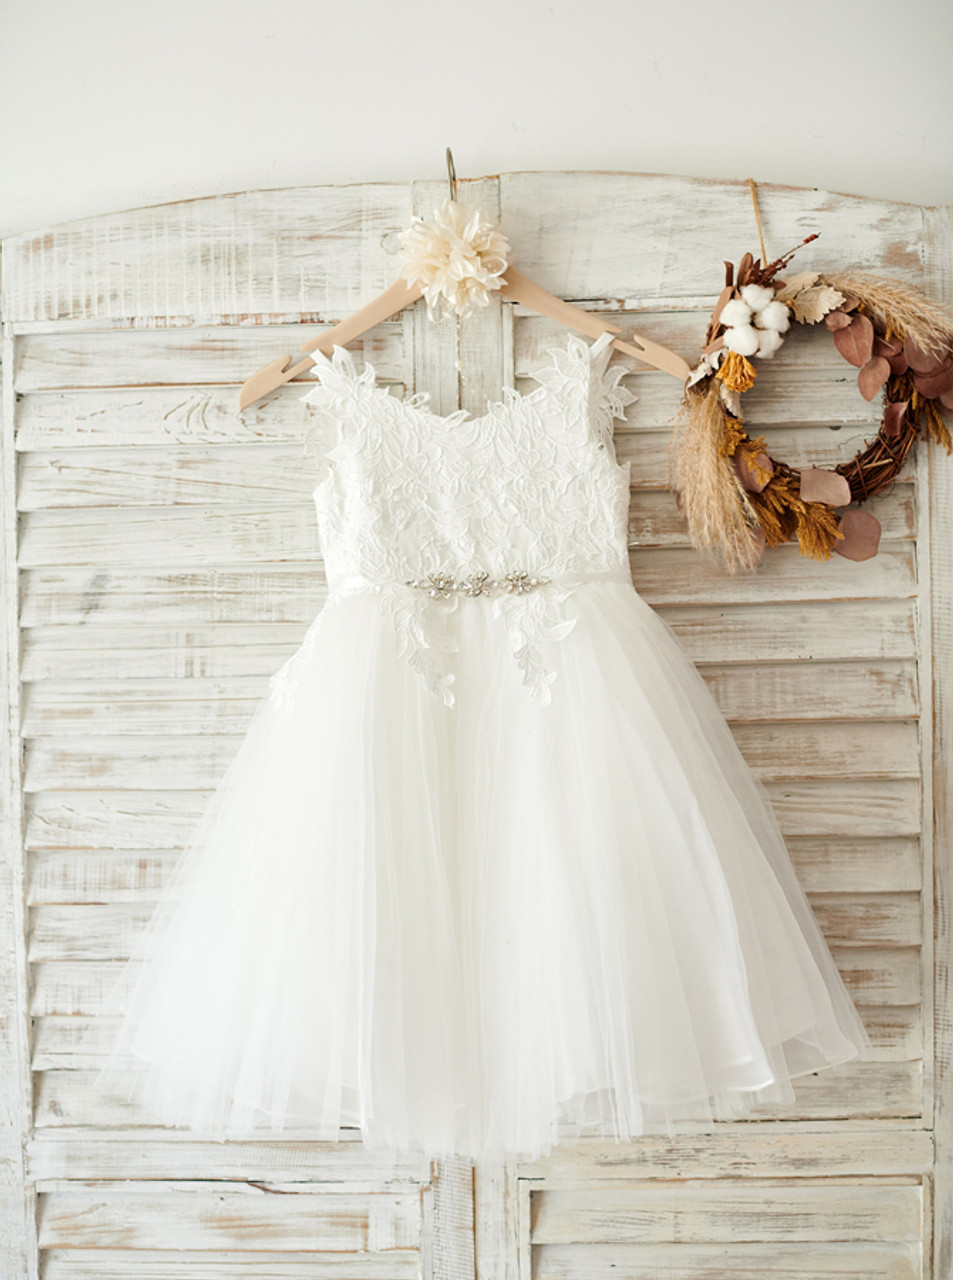 White Flower Girl Dressesadorable Flower Girl Dress11833